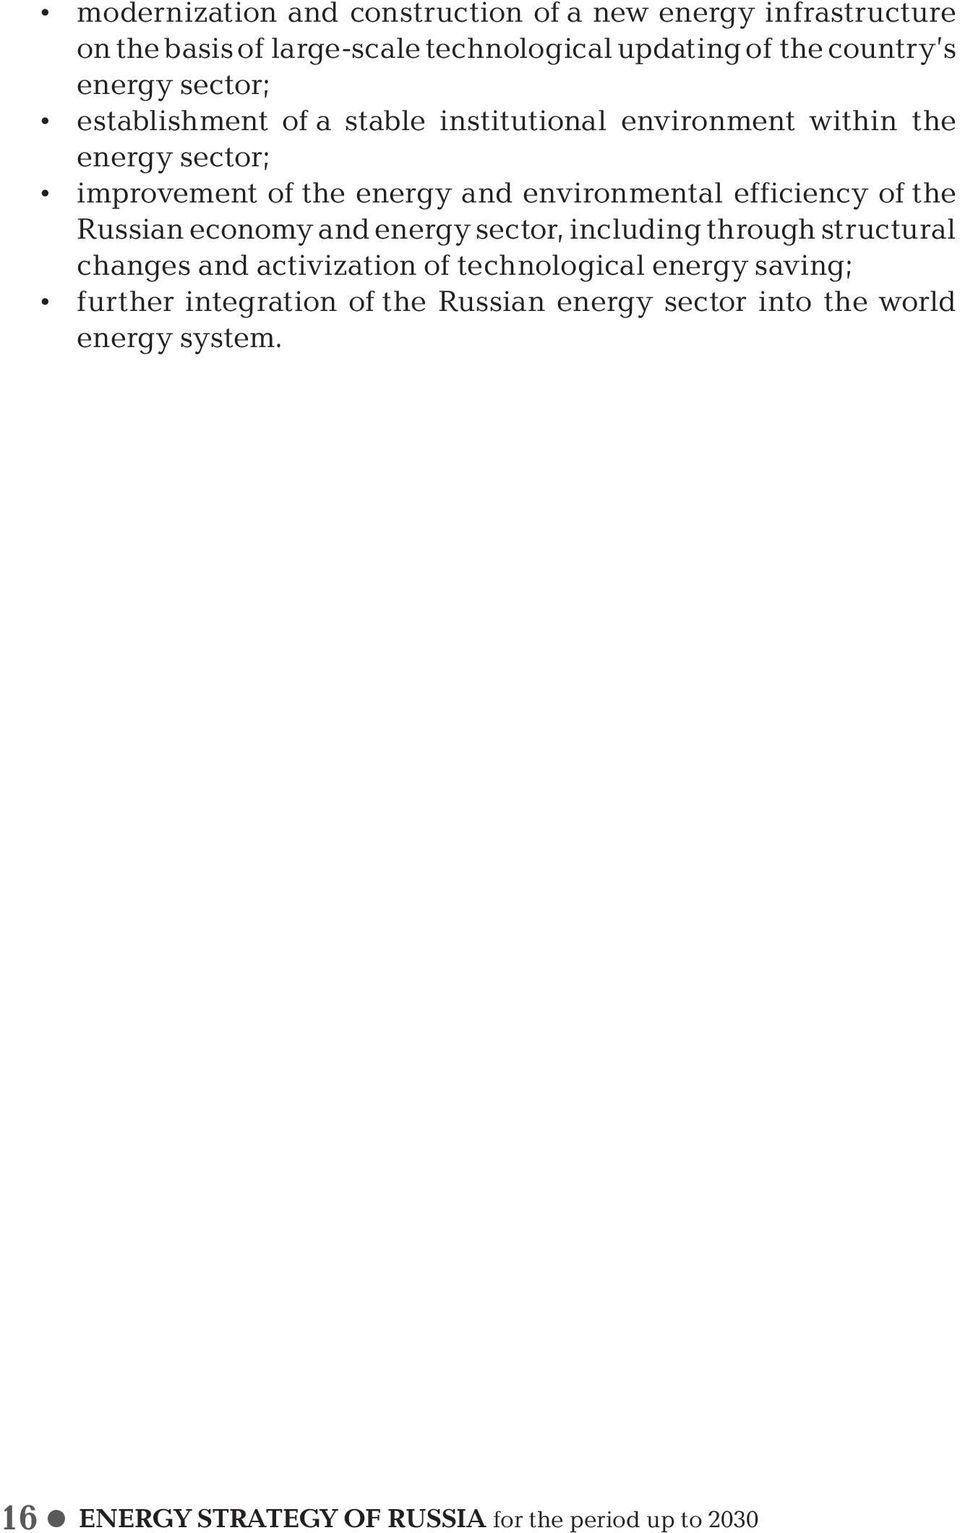 environmental efficiency of the Russian economy and energy sector, including through structural changes and activization of